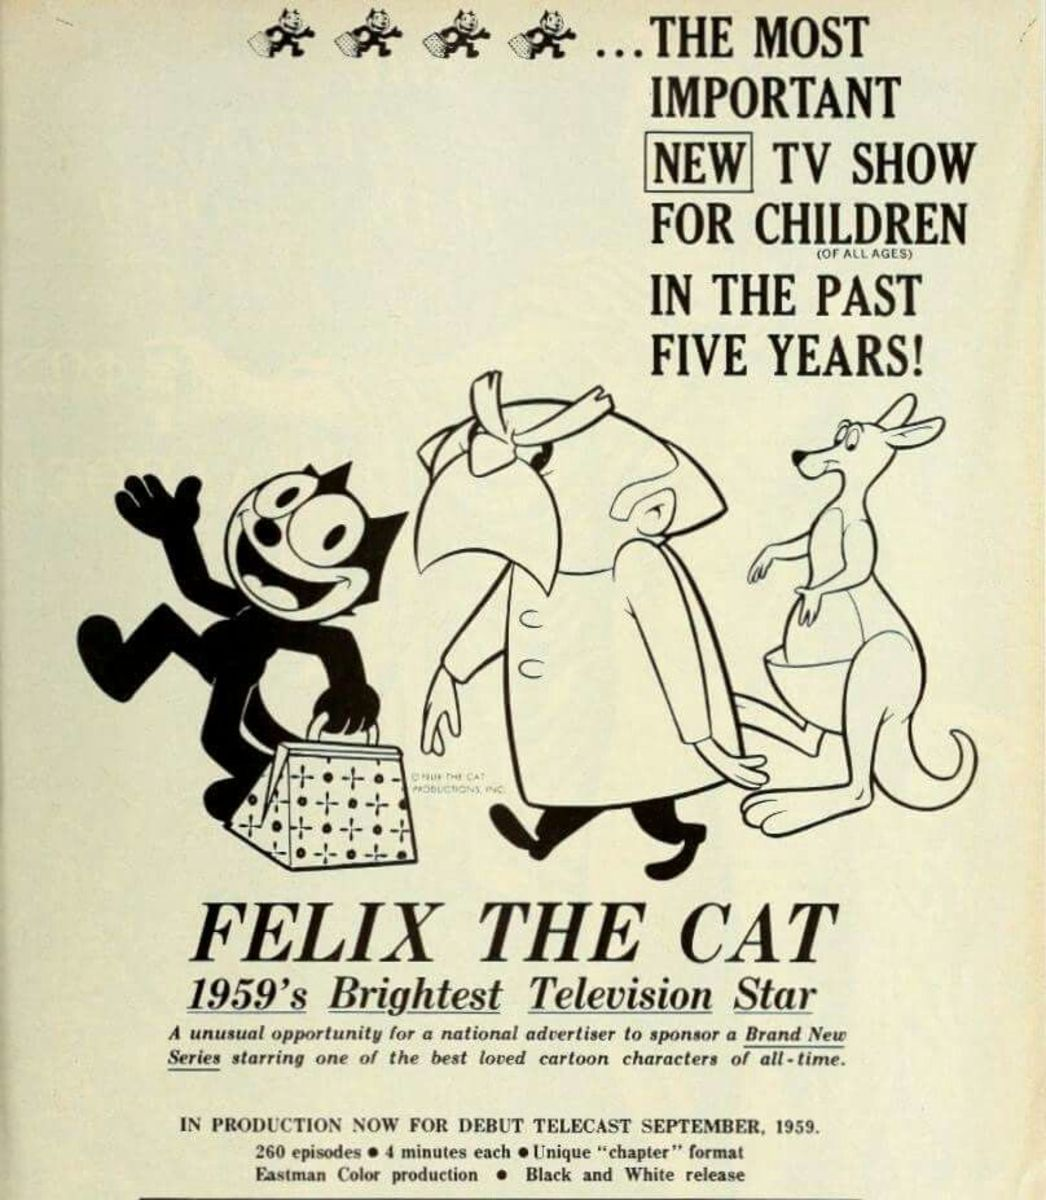 Promotional advert for the show.